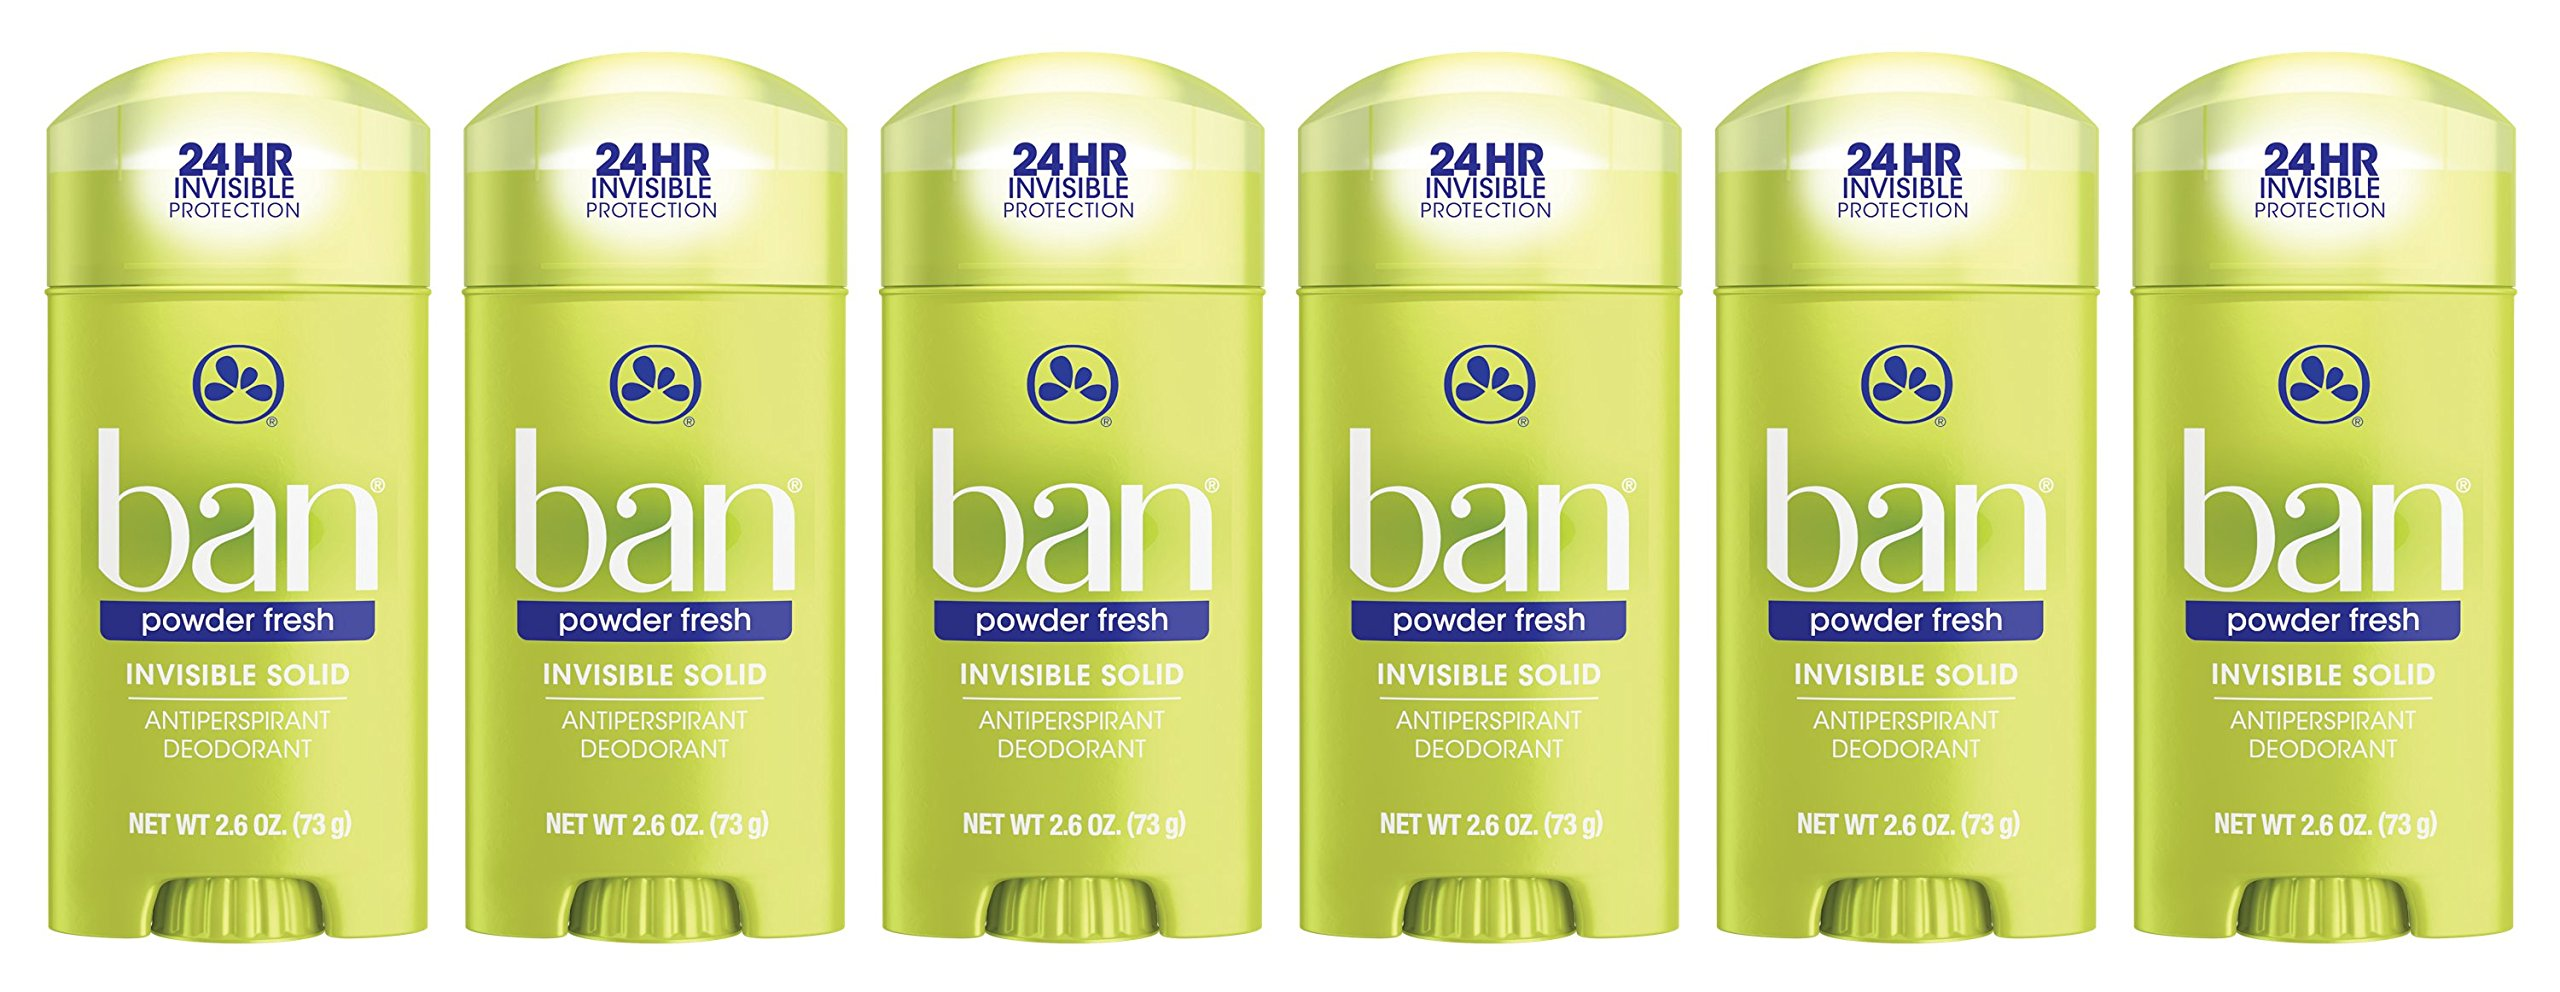 Ban Antiperspirant Deodorant, Invisible Solid, Powder Fresh, 2.6 Ounce (Pack of 6)